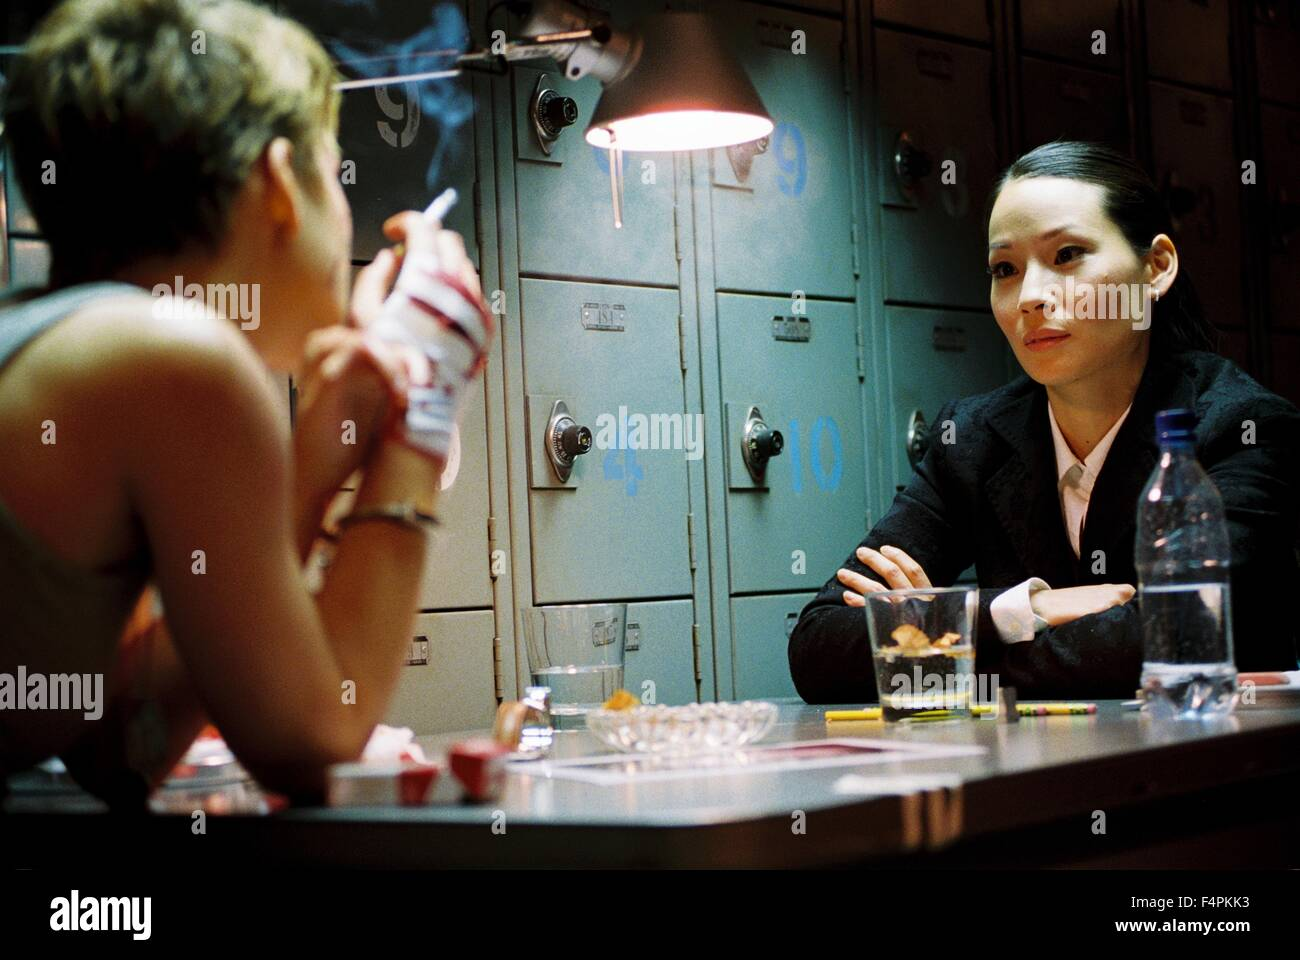 Keira Knightley and Lucy Liu / Domino / 2005 directed by Tony Scott [New Line Cinema] - Stock Image